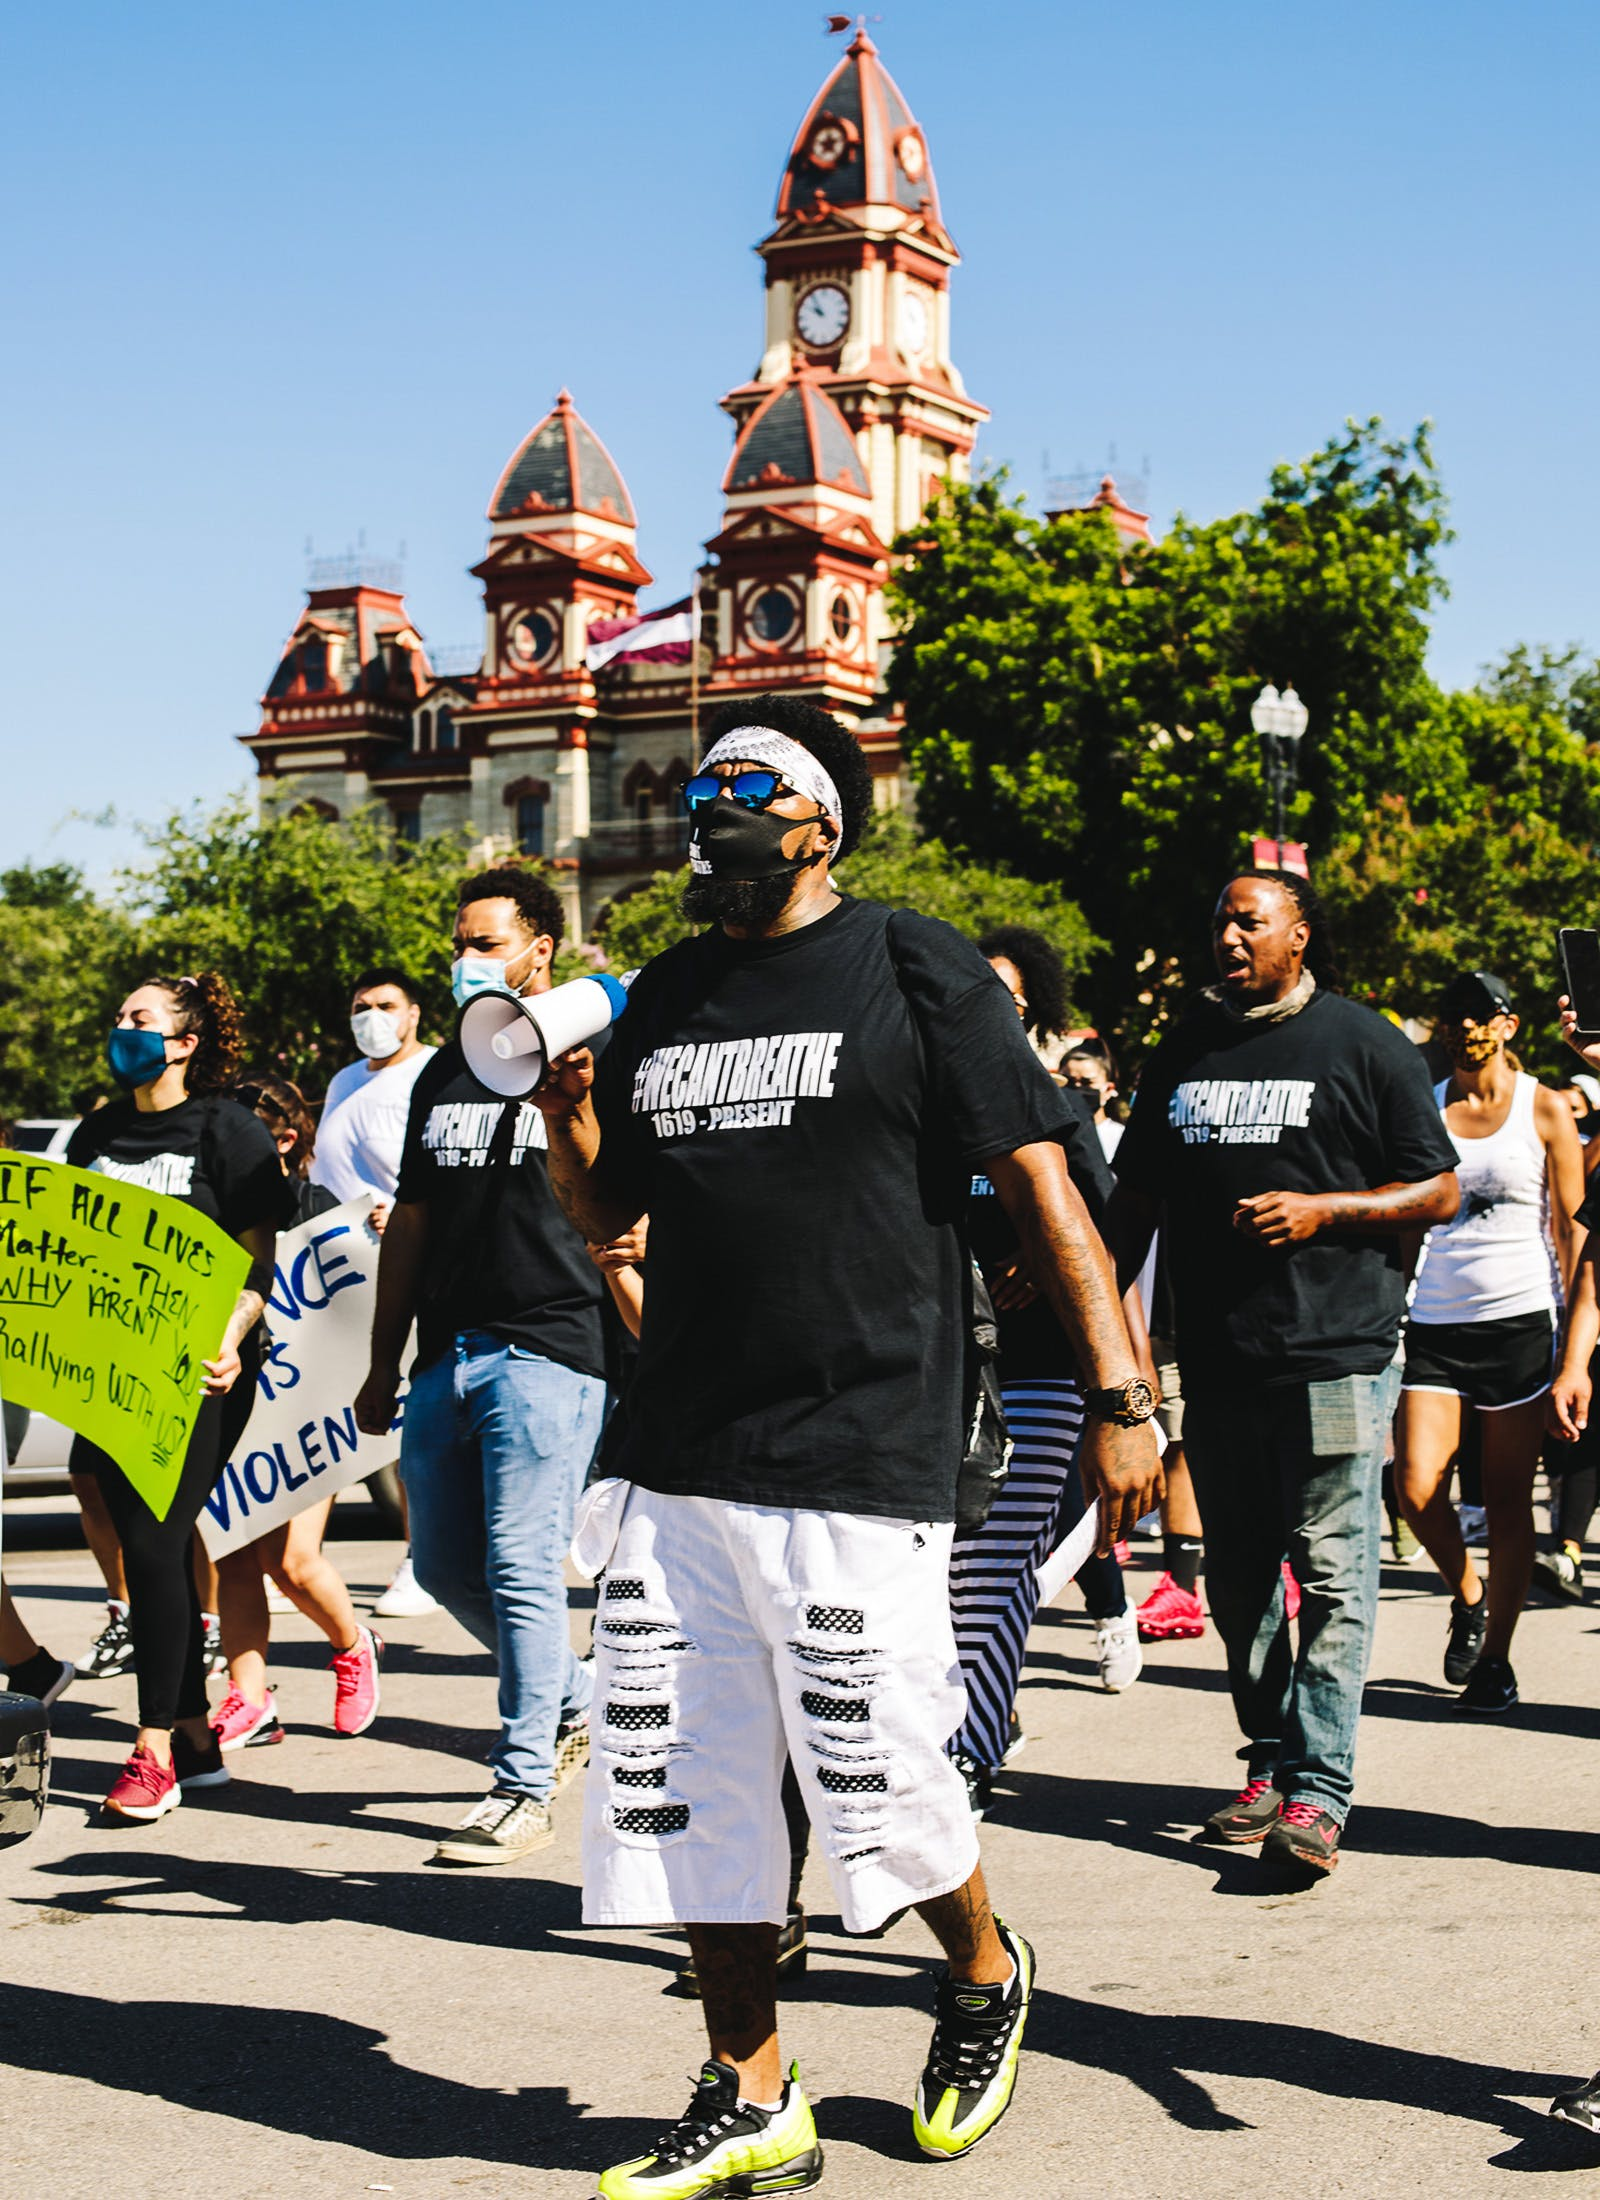 Joe Rollins leads protesters in a chant near Lockhart's historic courthouse building during a civil rights march celebrating the life of George Floyd on Saturday, June 13.